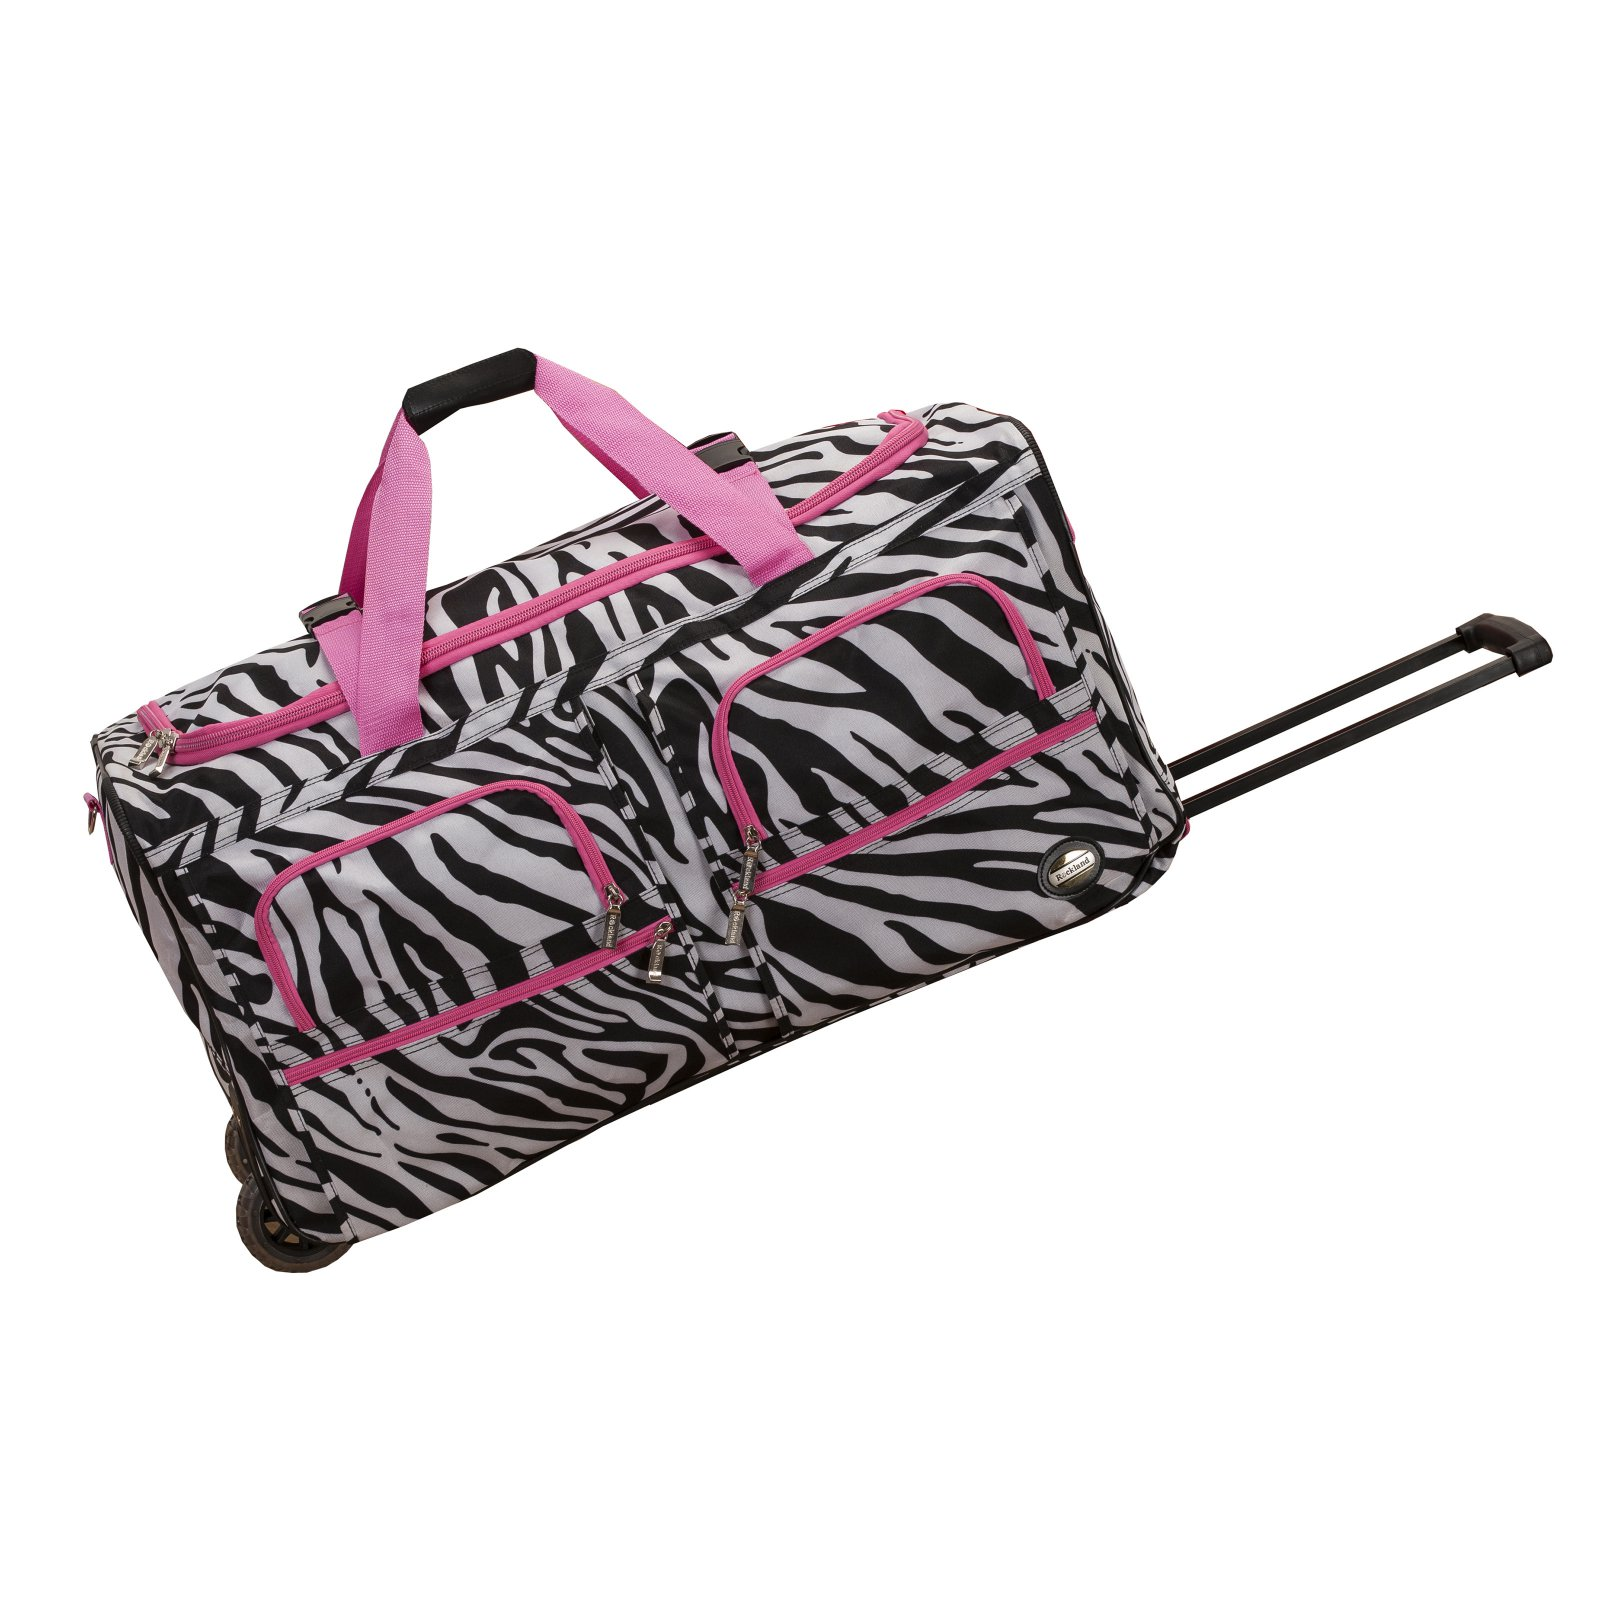 "Rockland Luggage 30"" Rolling Duffle Bag by Fox Luggage Inc"